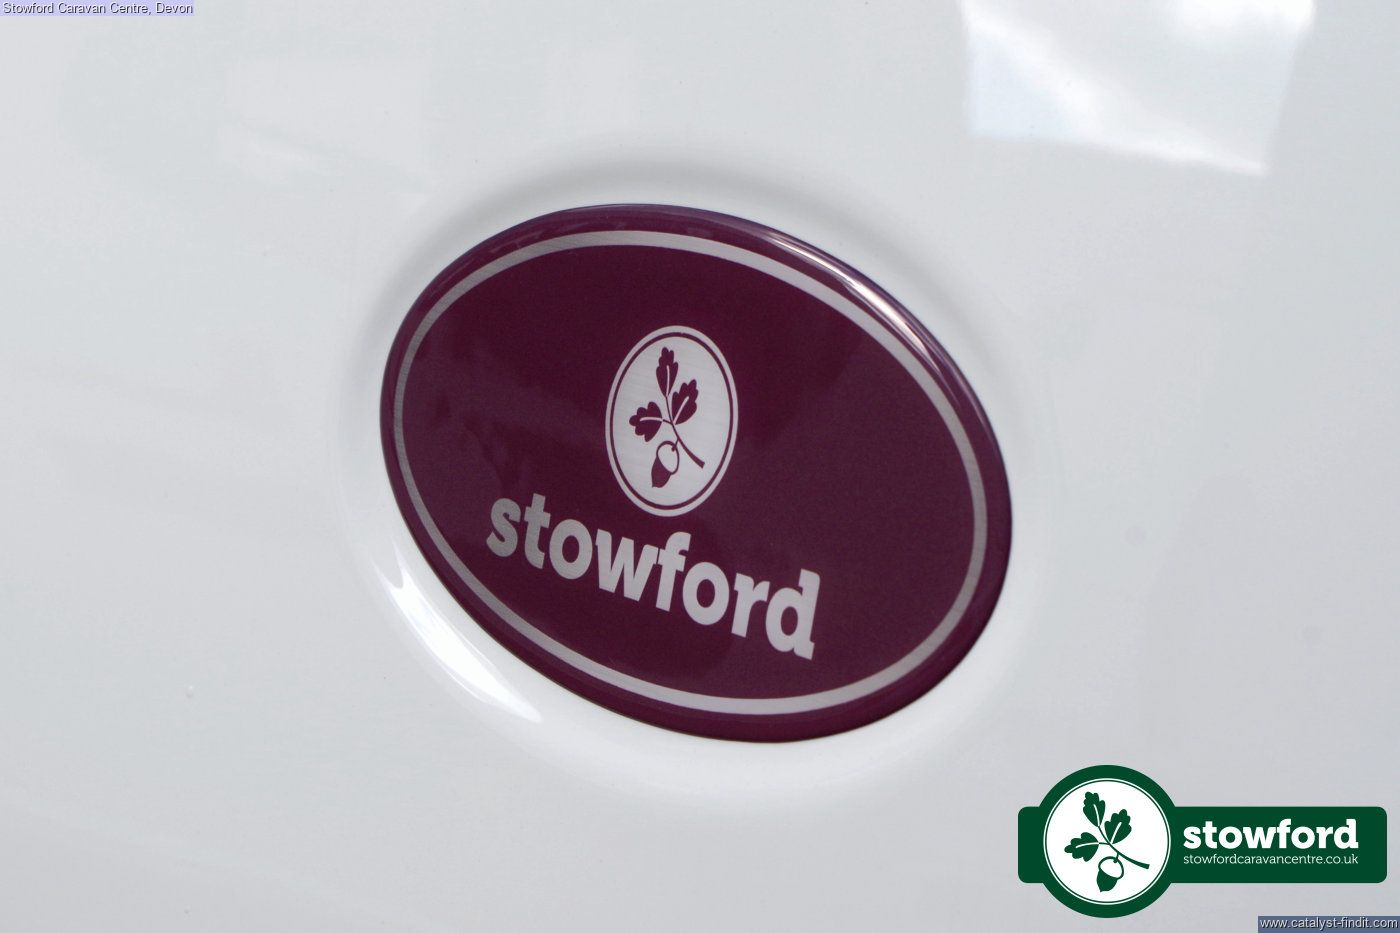 Bailey Stowford ST 760 2019